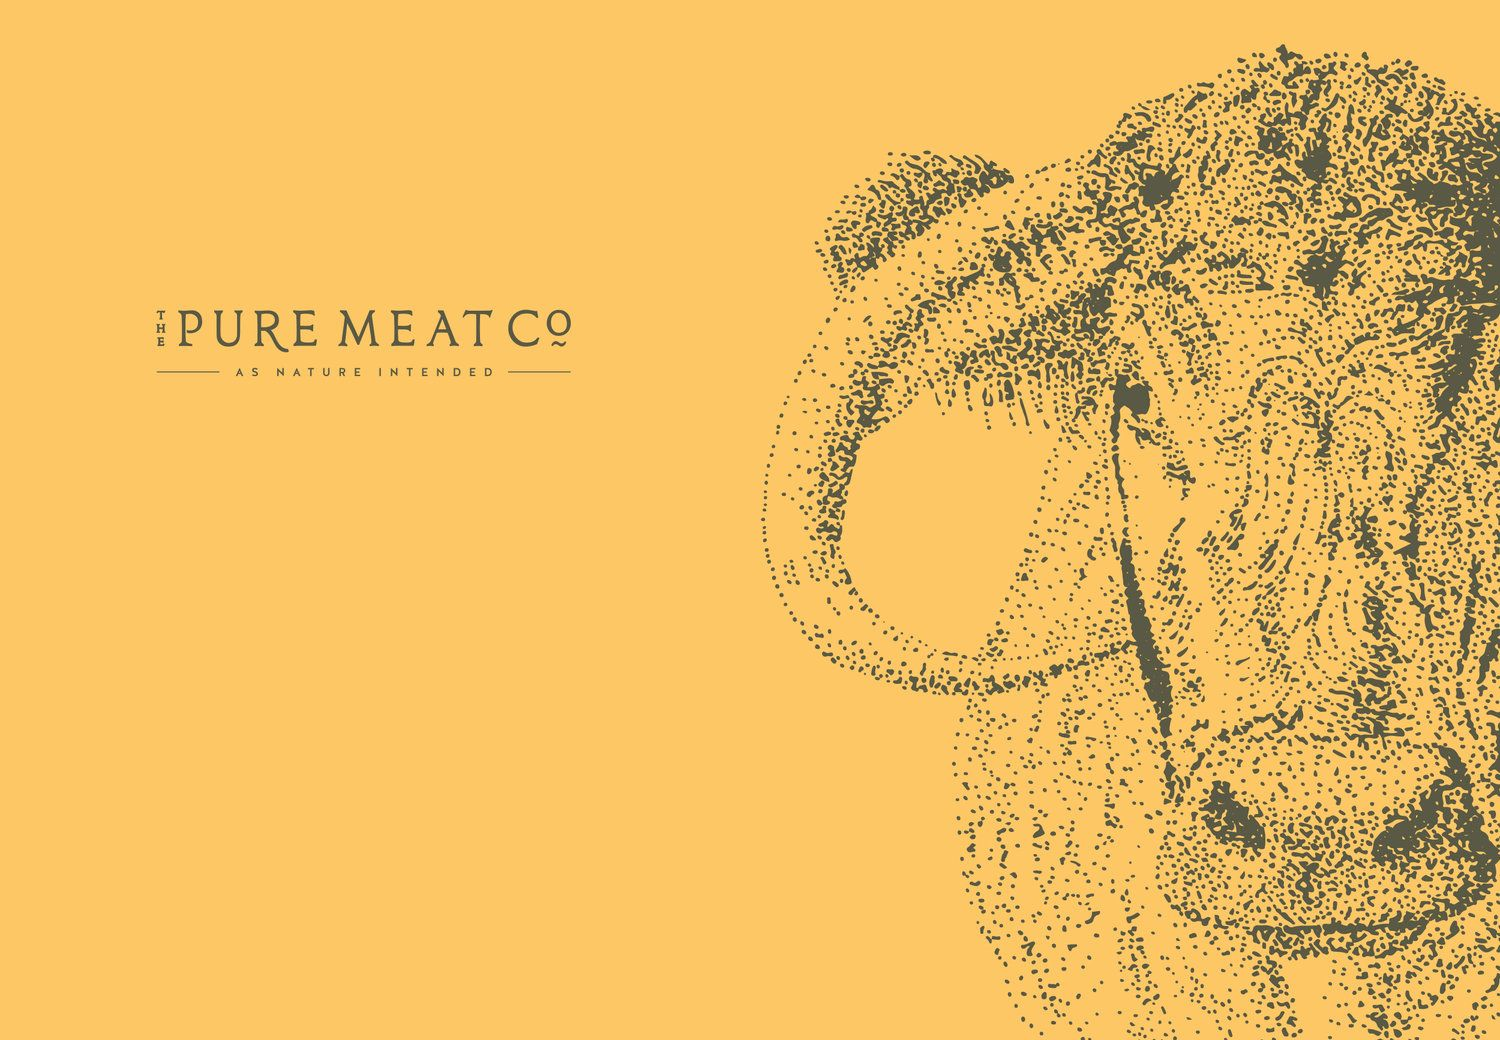 1588bce112a37b The Pure Meat Company brand identity and logo design by Ditto Creative